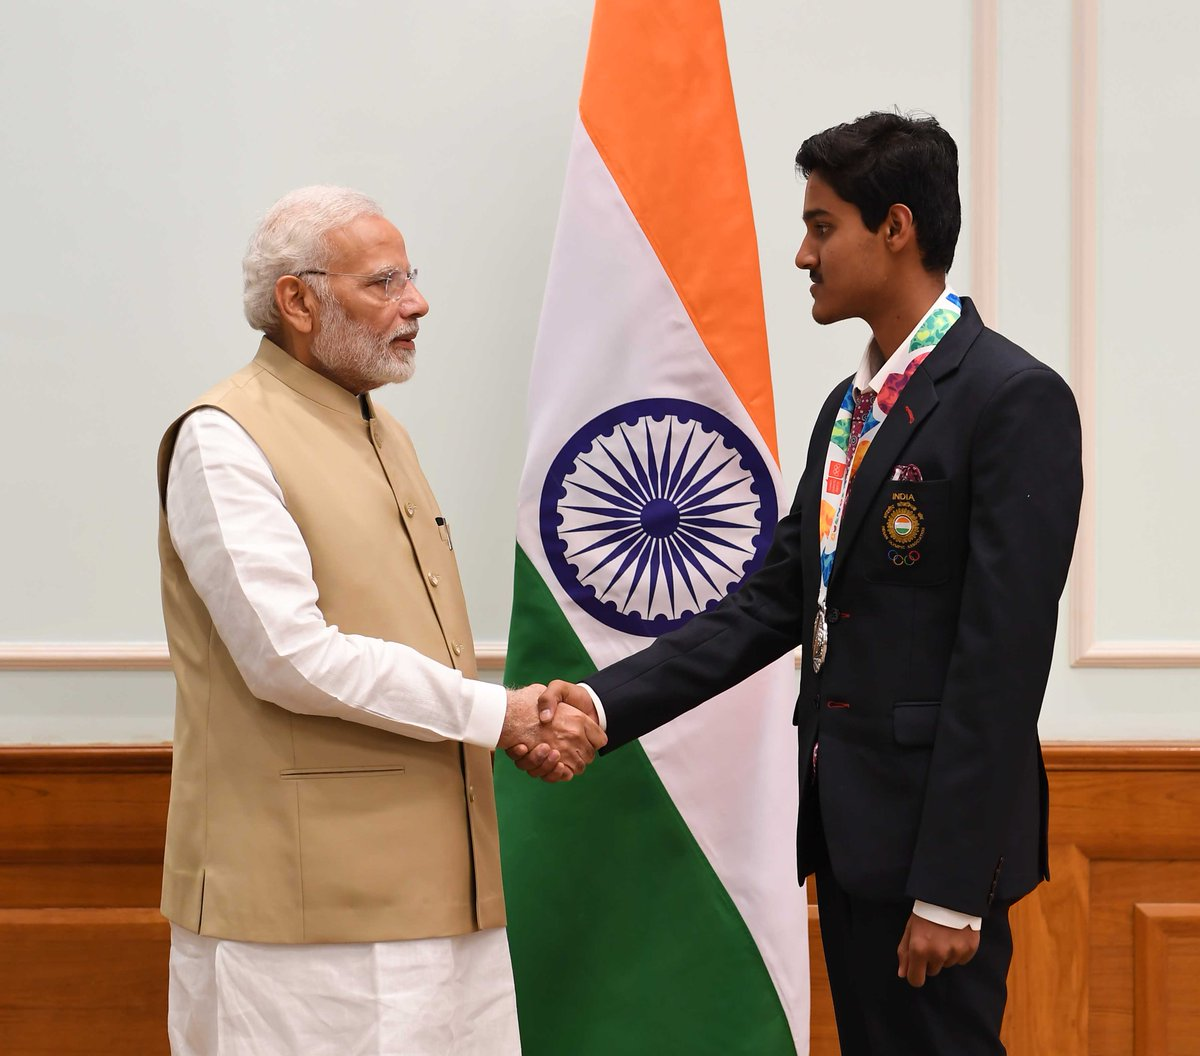 Kudos to Tushar Mane for striking the Silver at the 2018 Youth Olympic Games in 10m Air Rifle Shooting event. His dedication towards sports is commendable. It was great meeting him today. May he win many more laurels in the times to come.